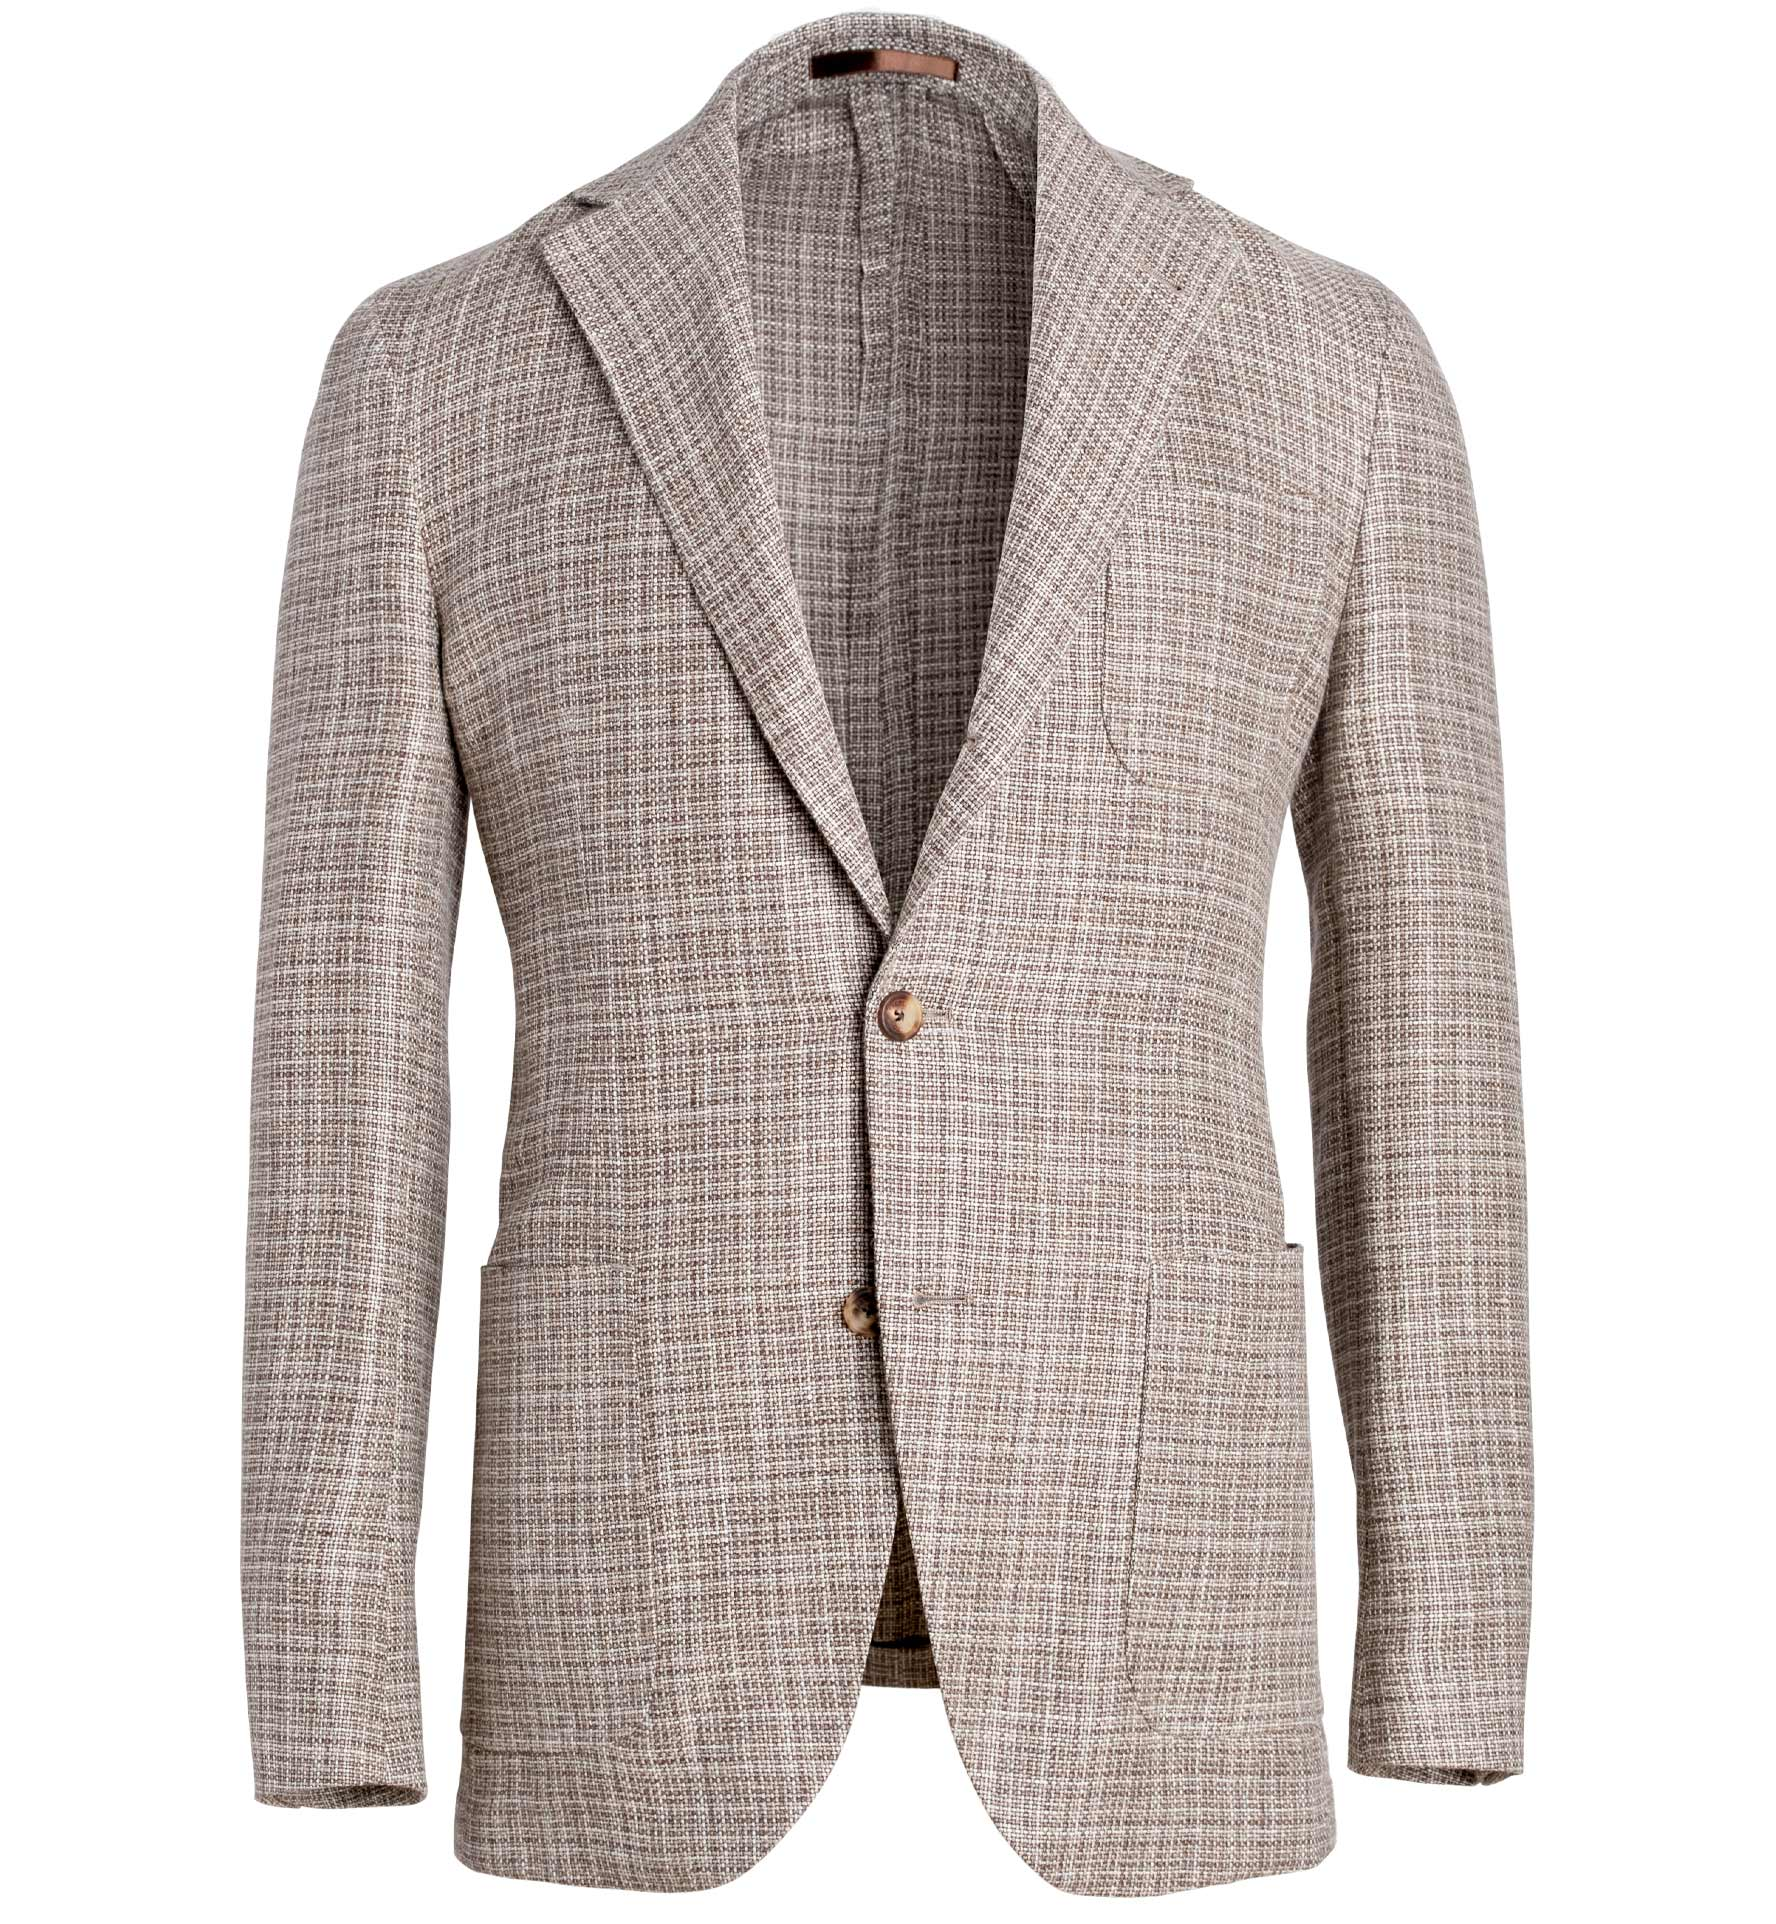 Zoom Image of Waverly Beige Hemp and Wool Basketweave Jacket